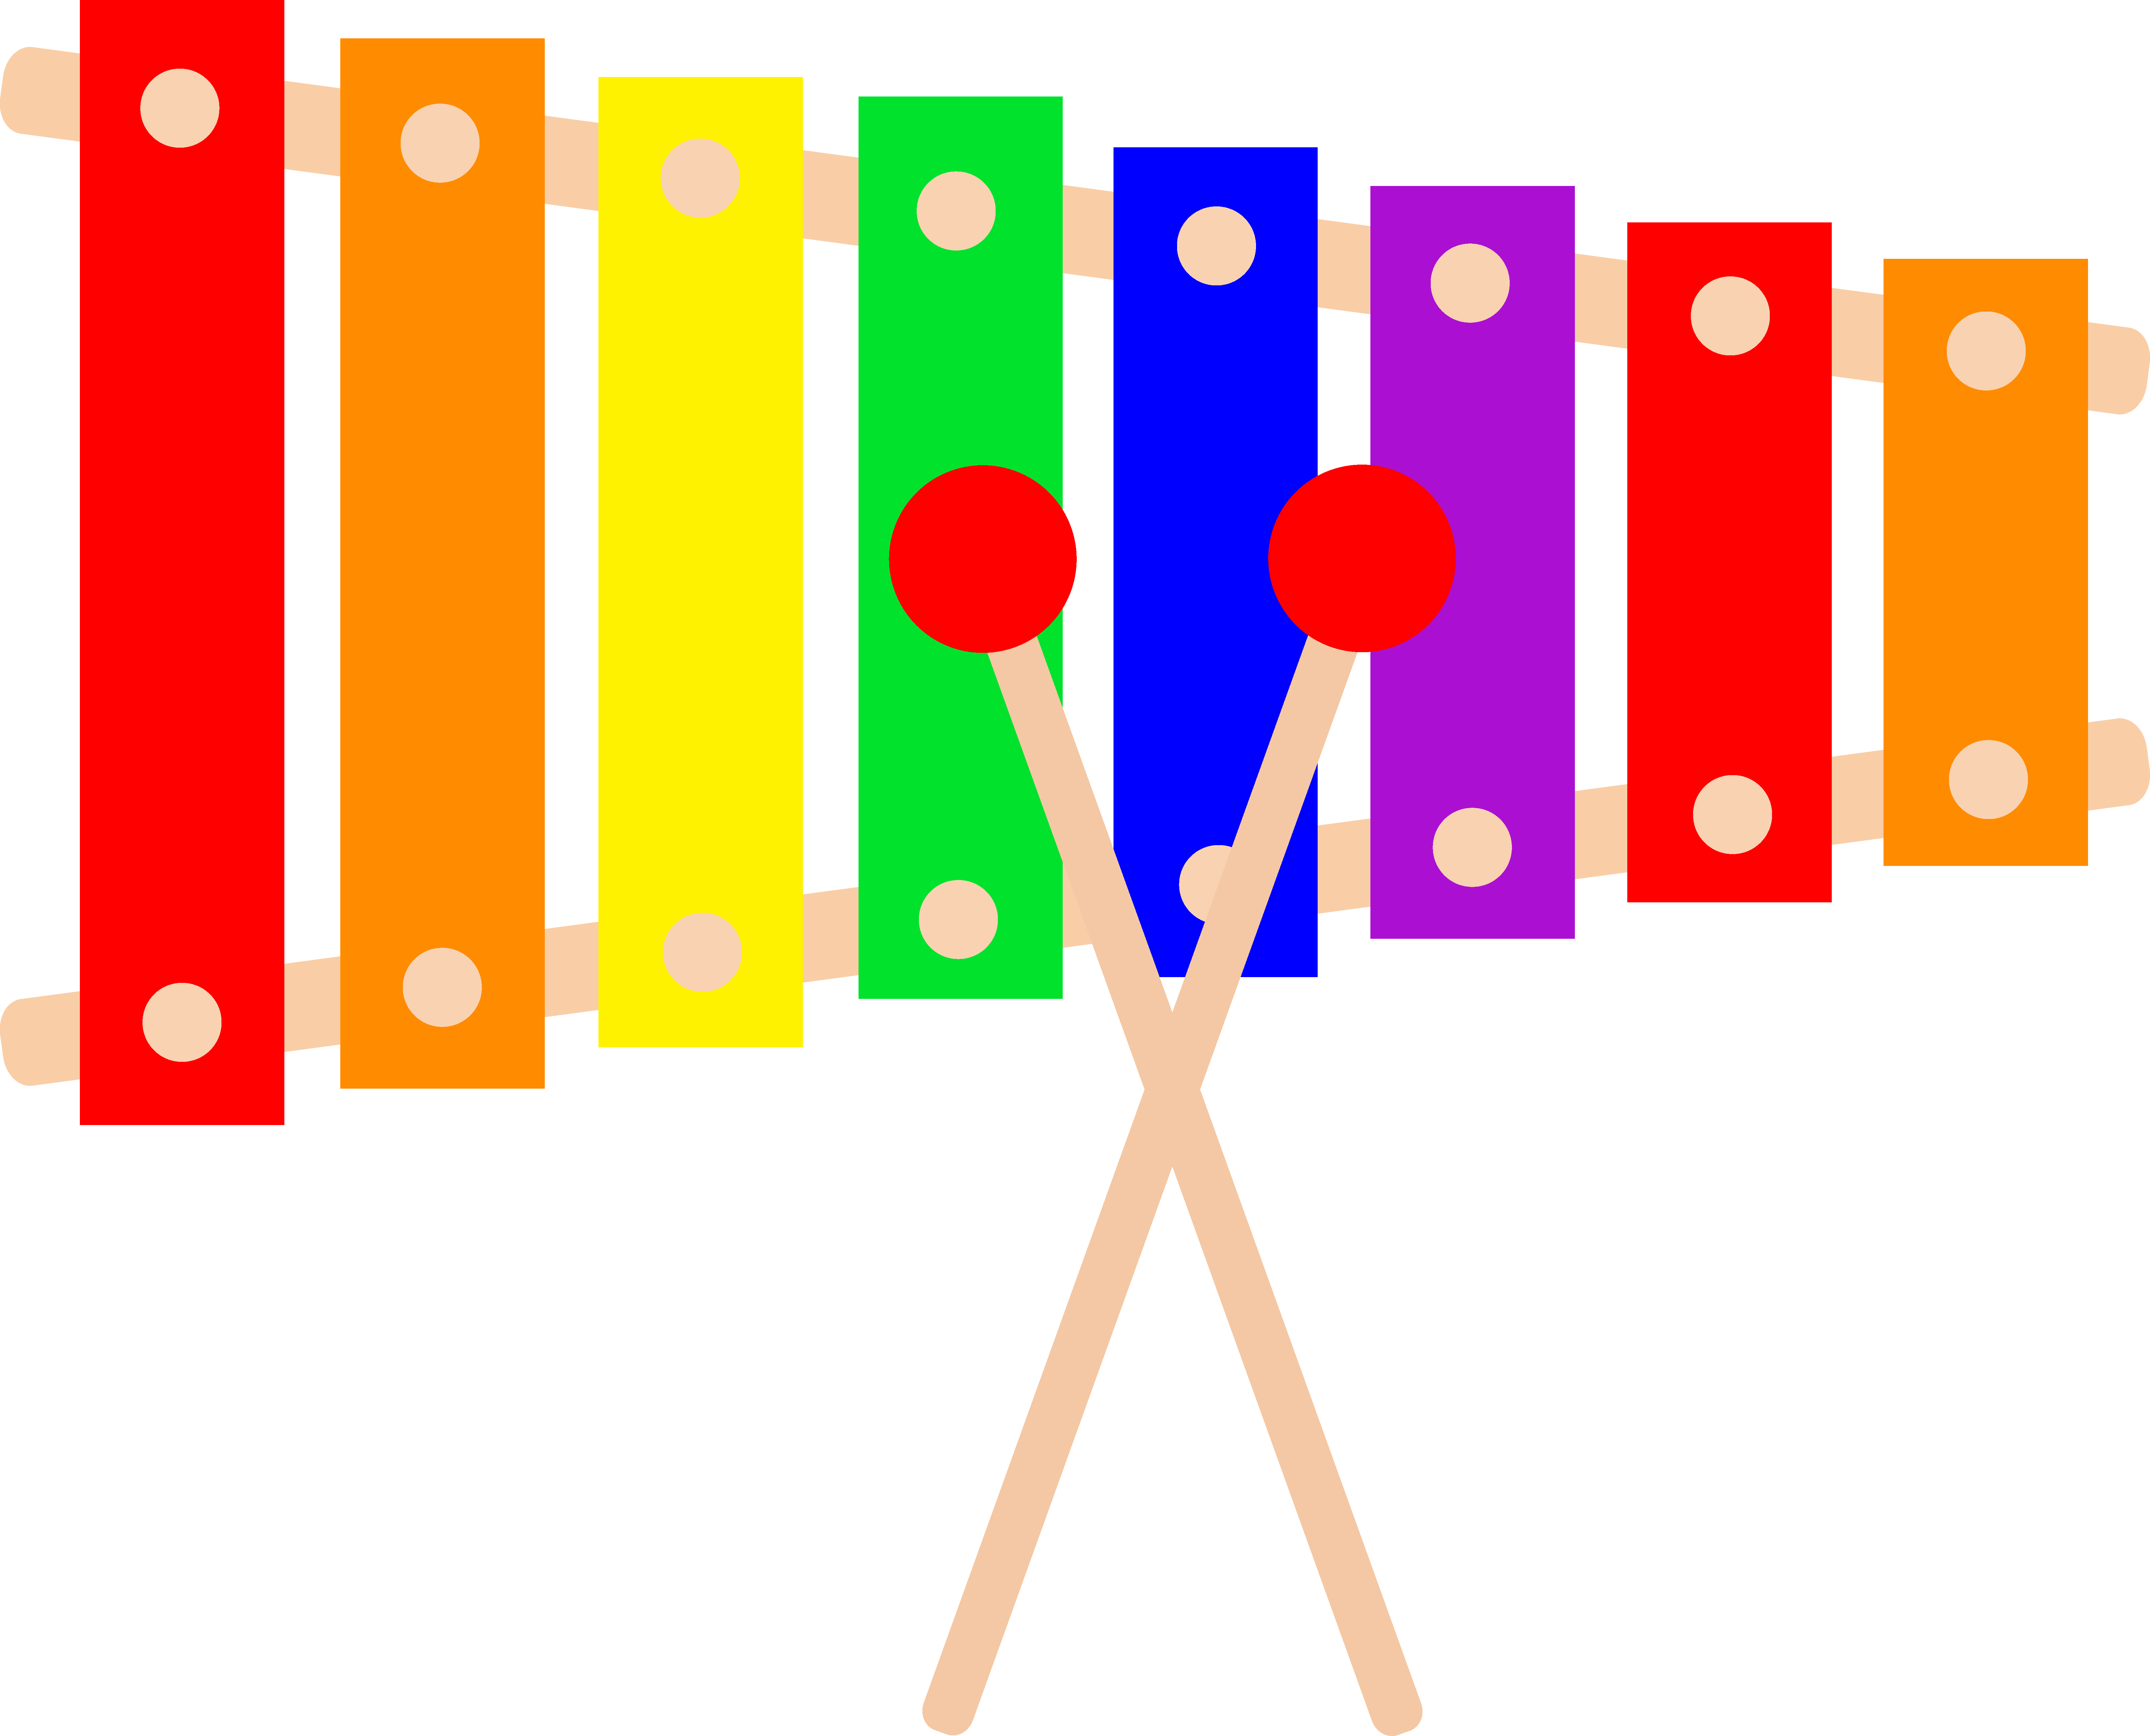 xylophone clipart 1